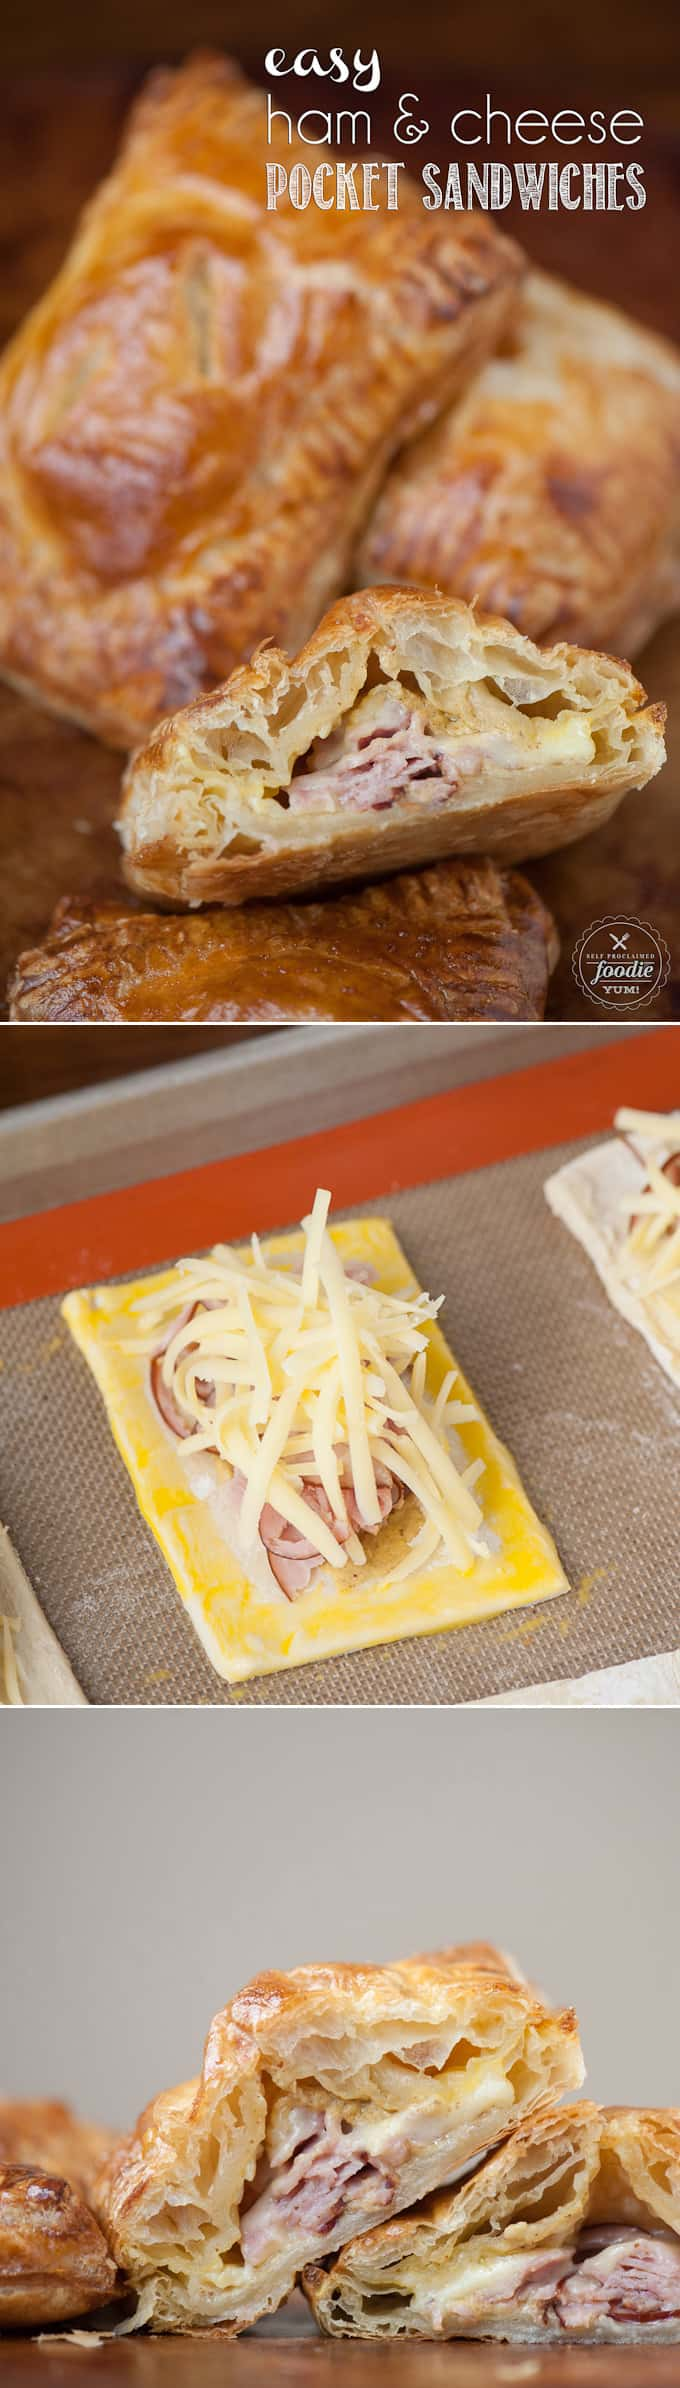 As we get ready to send out kids back to school, lunchbox favorites like these Easy Ham and Cheese Pocket Sandwiches will make your kids smile!